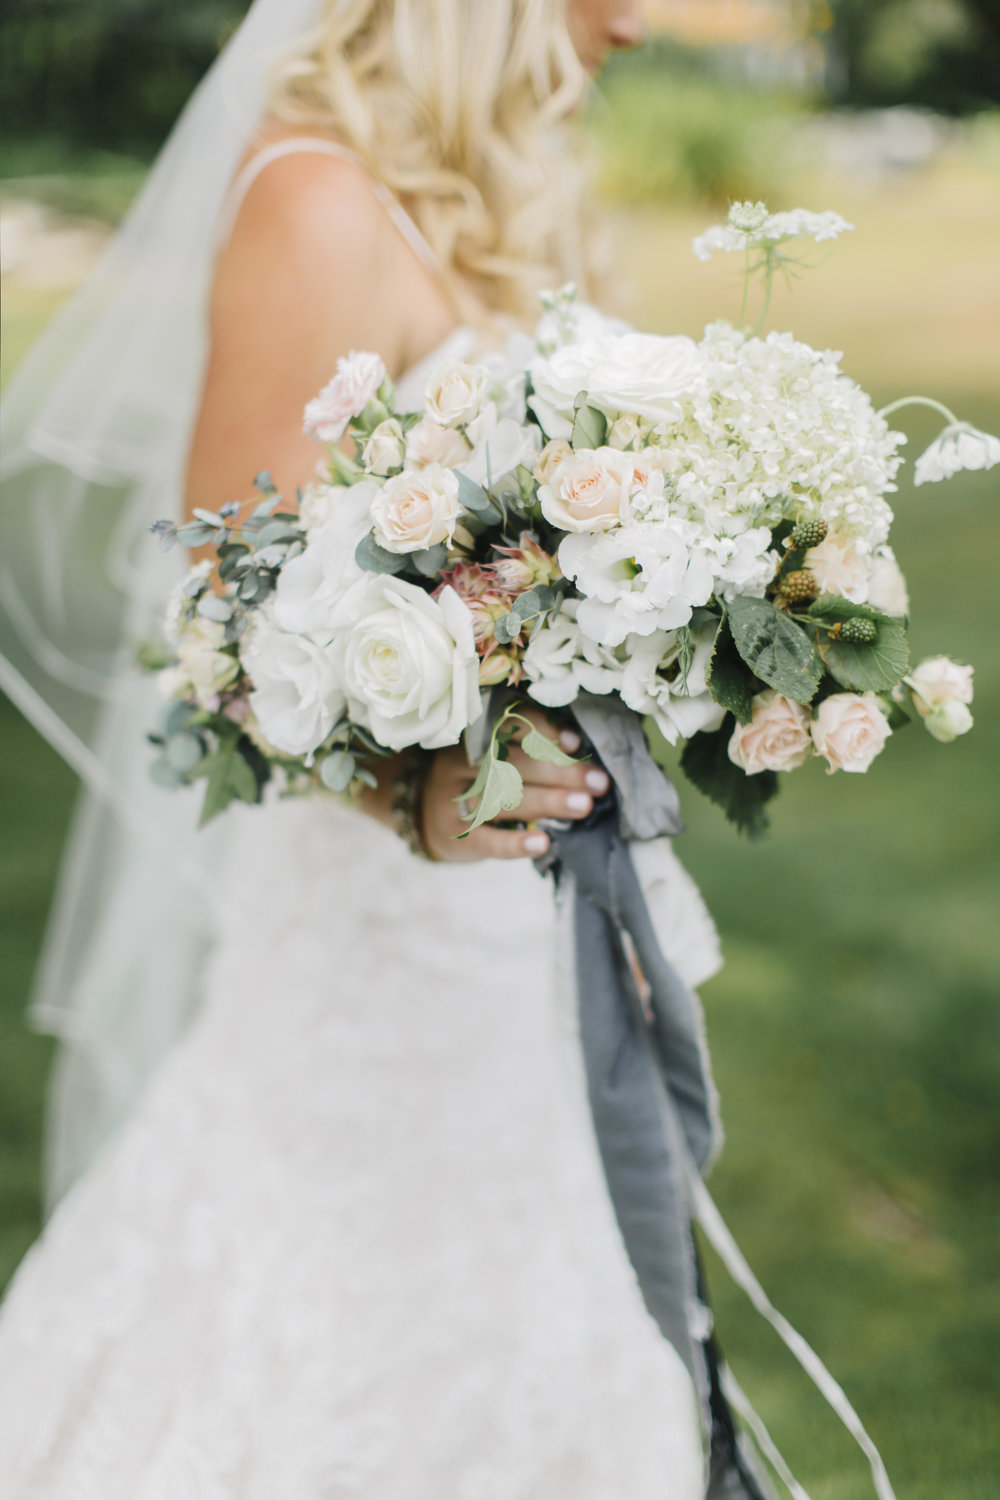 Watershed-Floral-Live-Well-Farm-Maine-Summer-Bridal-Bouquet-3.jpg